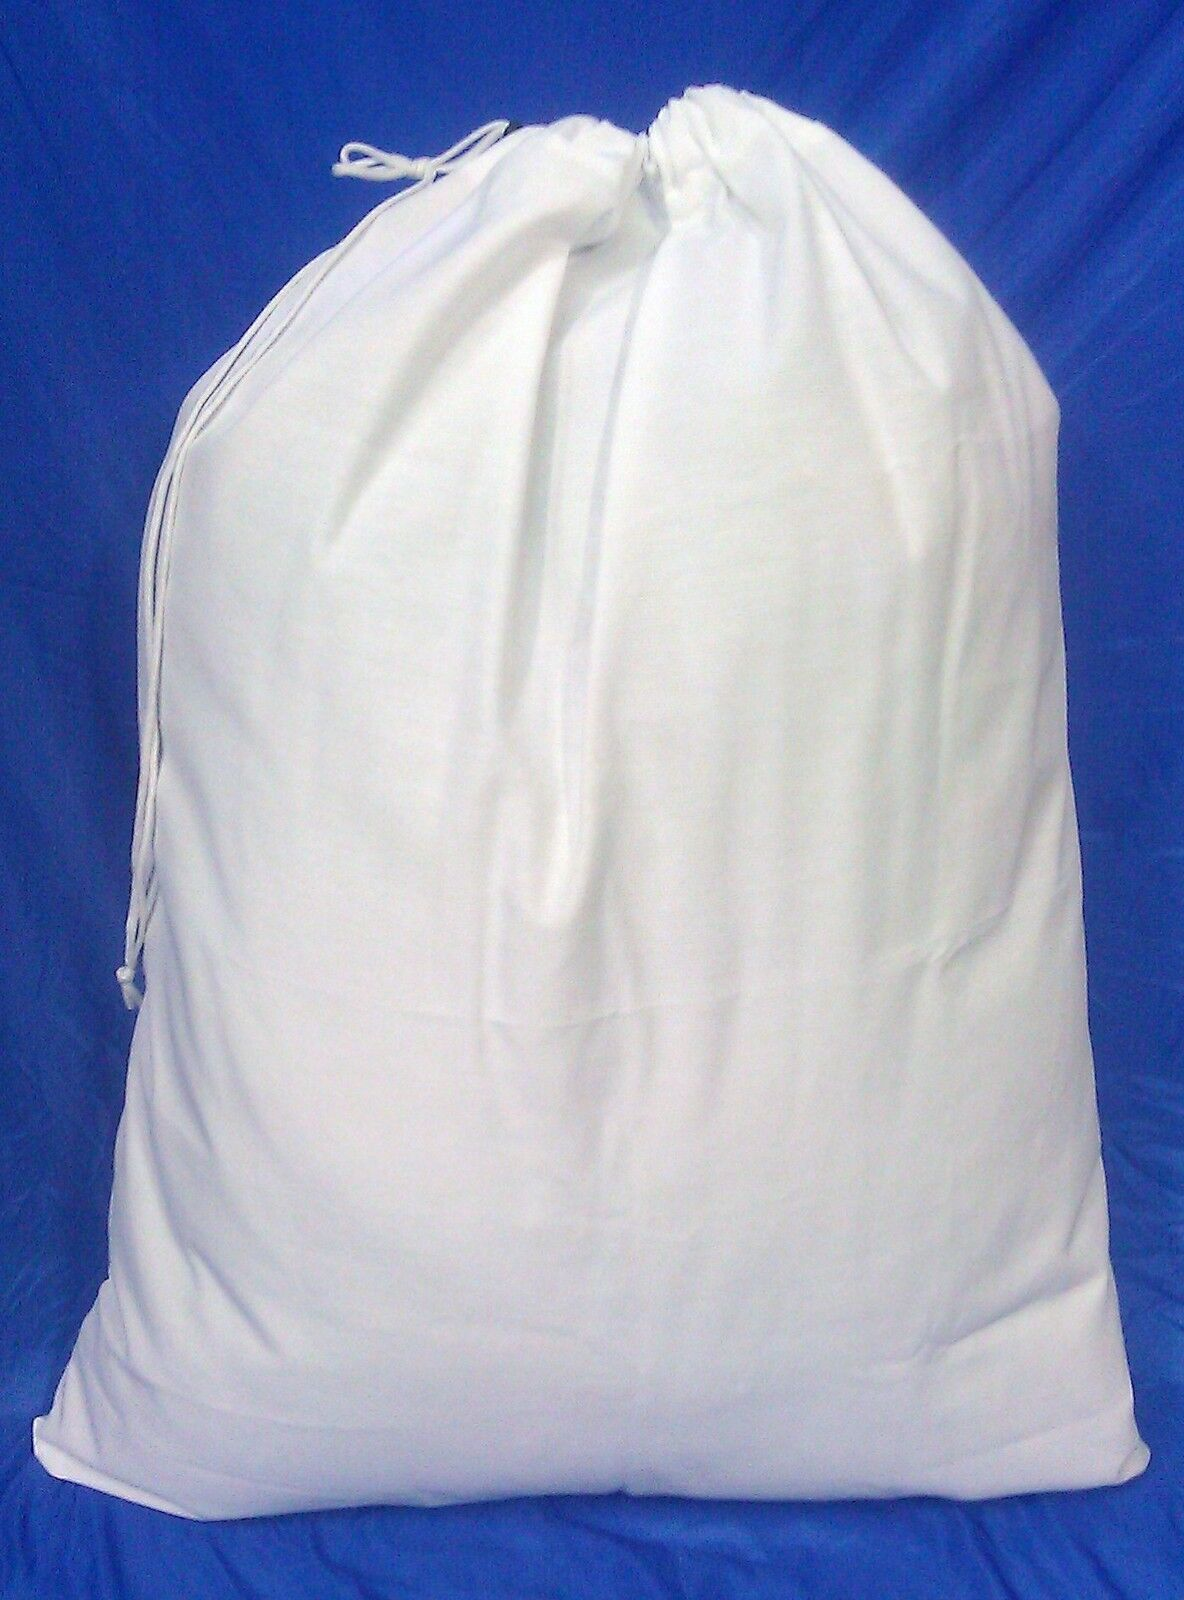 40 Weiß HEAVY DUTY 30x40 CANVAS STYLE LAUNDRY BAGS - MADE IN USA